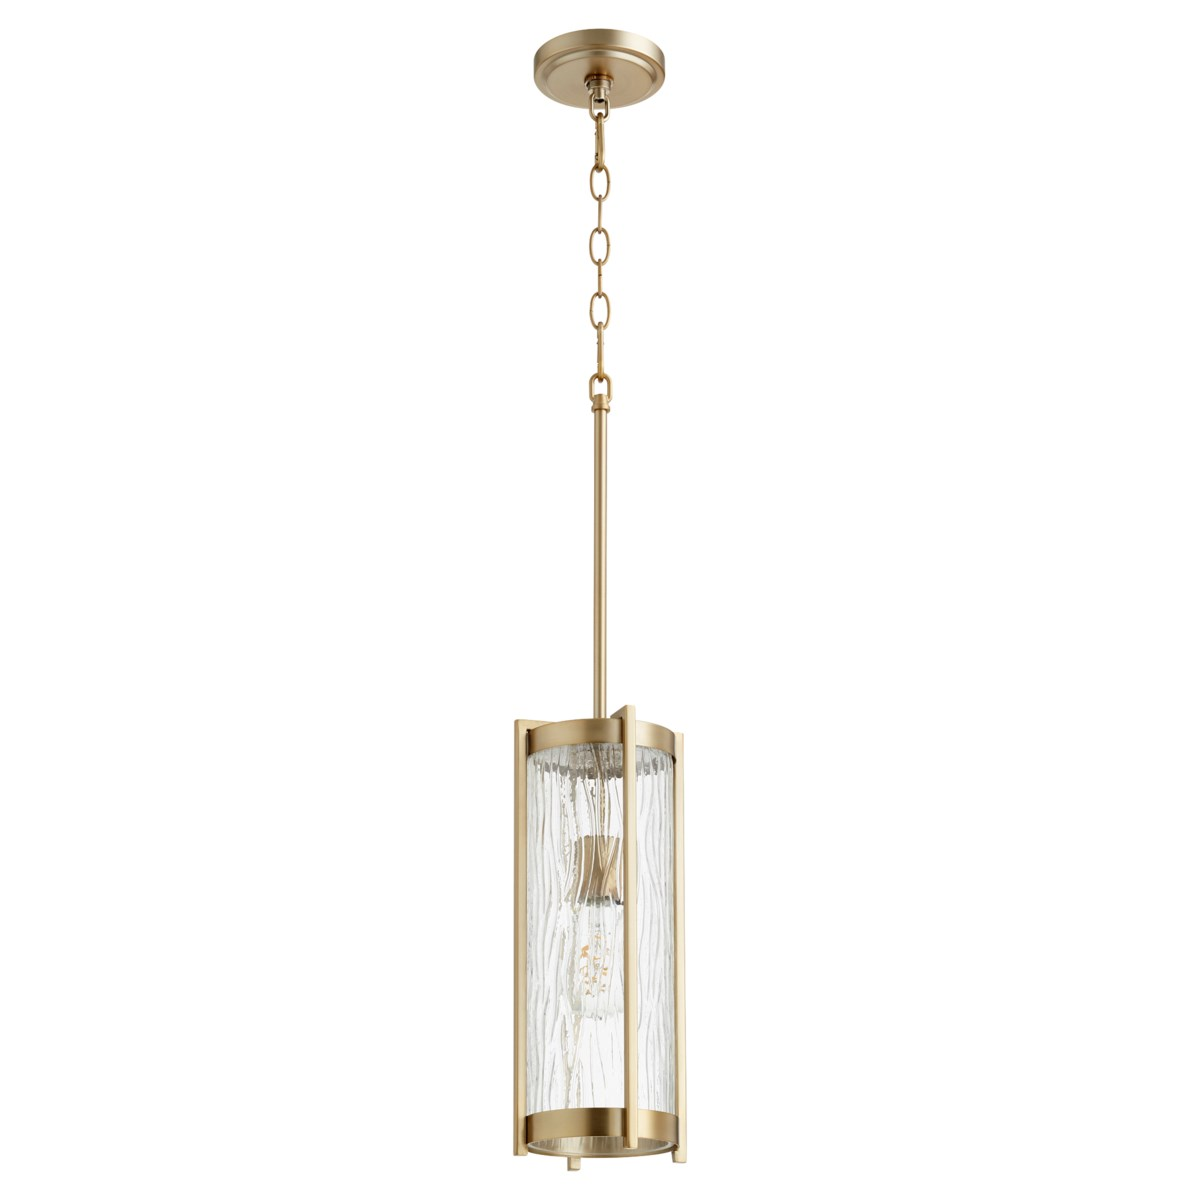 Chisseled Aged Brass Transitional Pendant